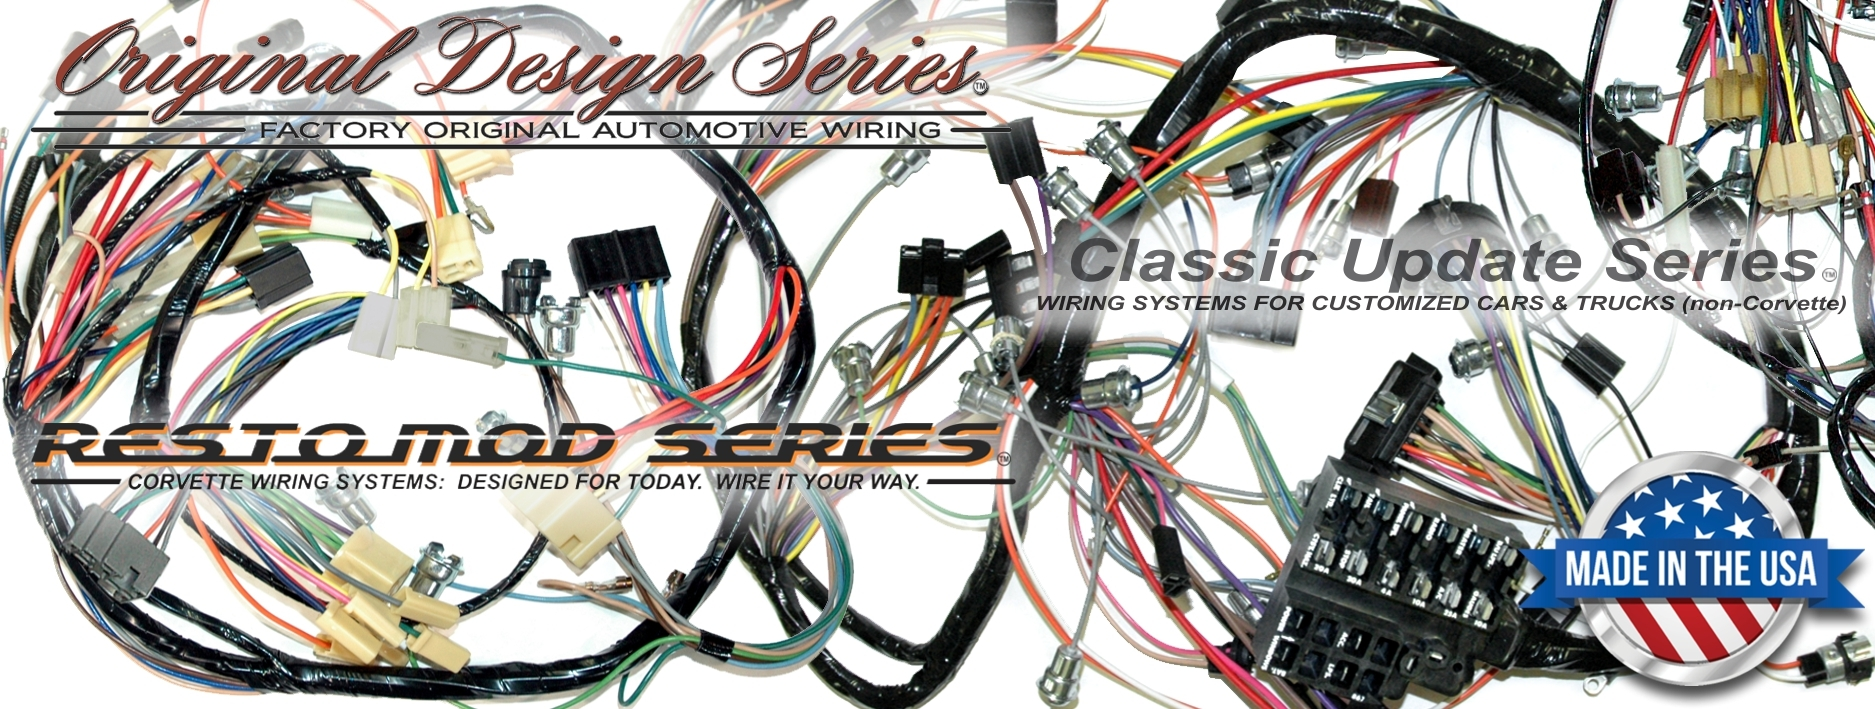 exact oem reproduction wiring harnesses and restomod wiring systems cadillac fleetwood individual wiring harnesses & complete wiring systems